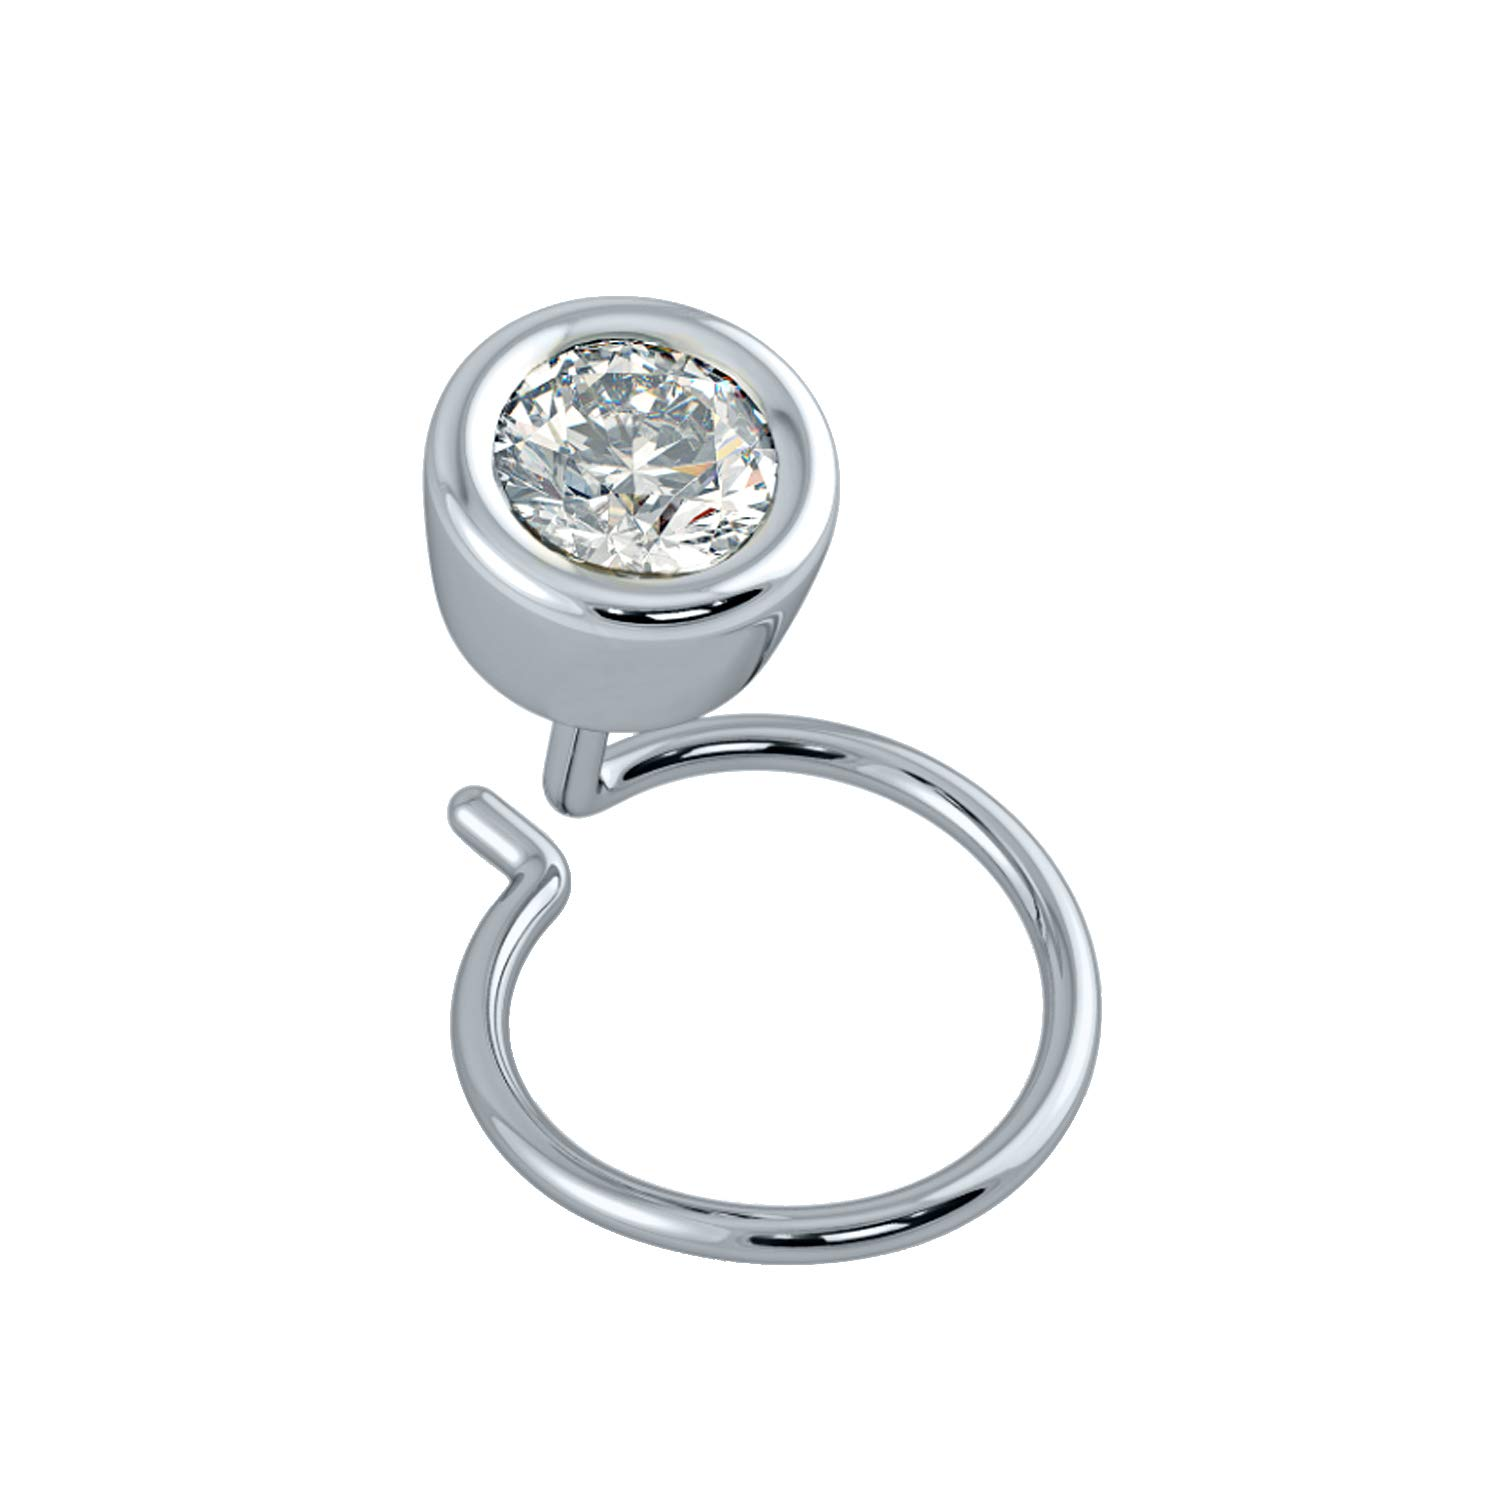 House of Kanak LLC 0.10 Ct Natural Diamond 14K White Gold Nose Body Piercing Stud Pin with Back Side Wire